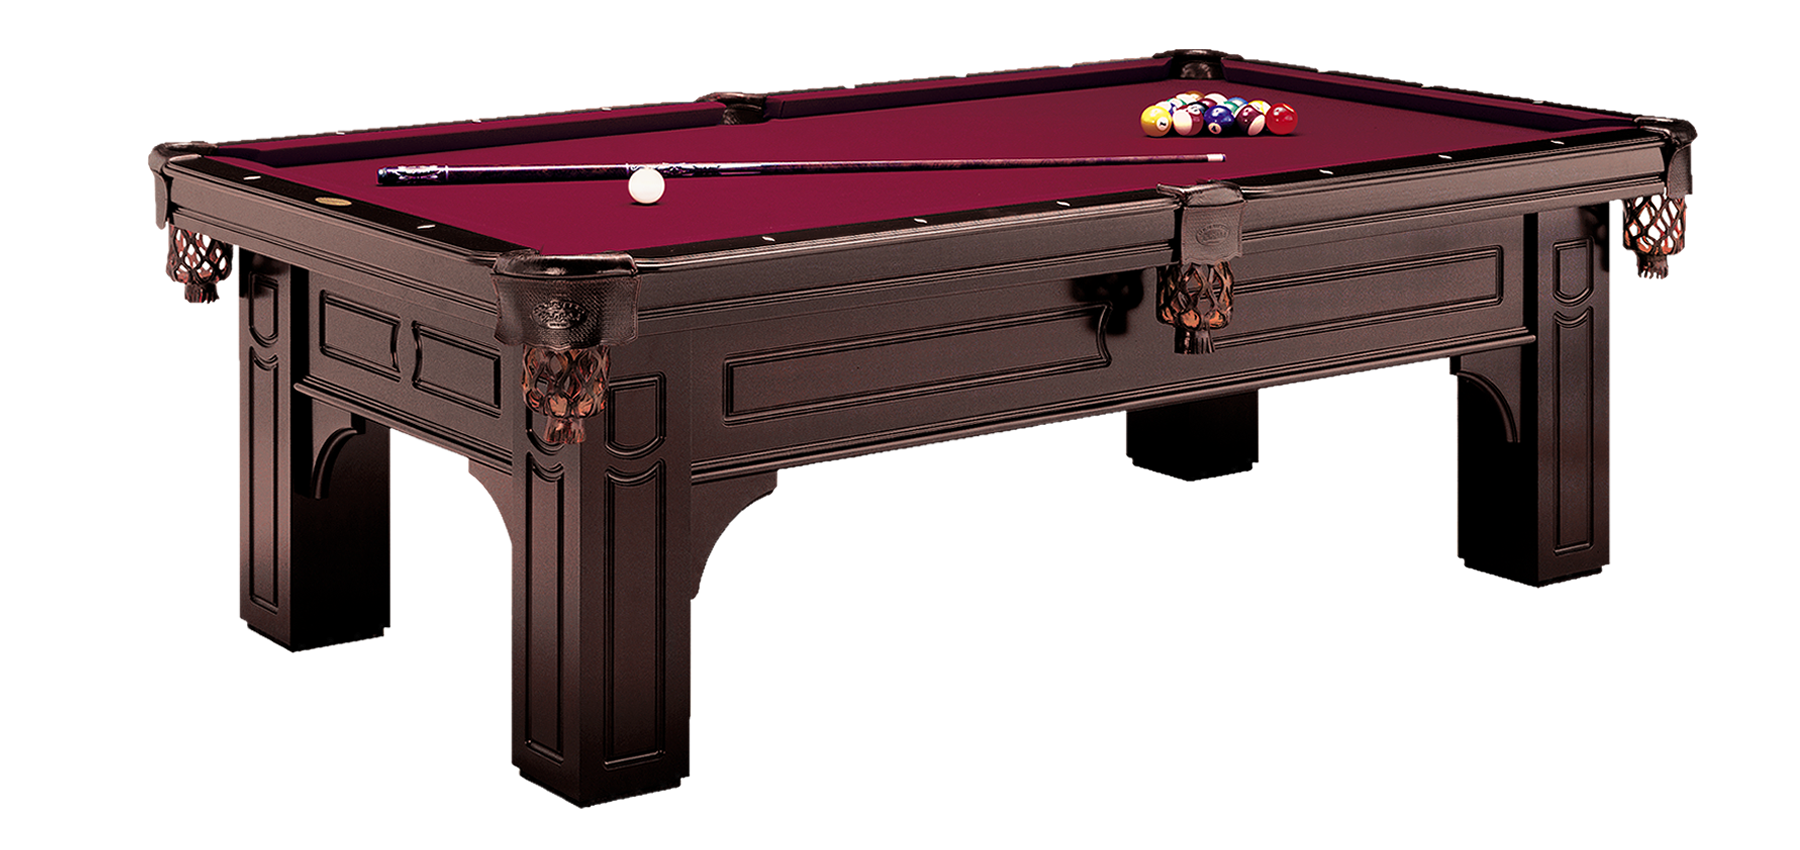 Remington Olhausen Billiards - Olhausen 30th anniversary pool table price